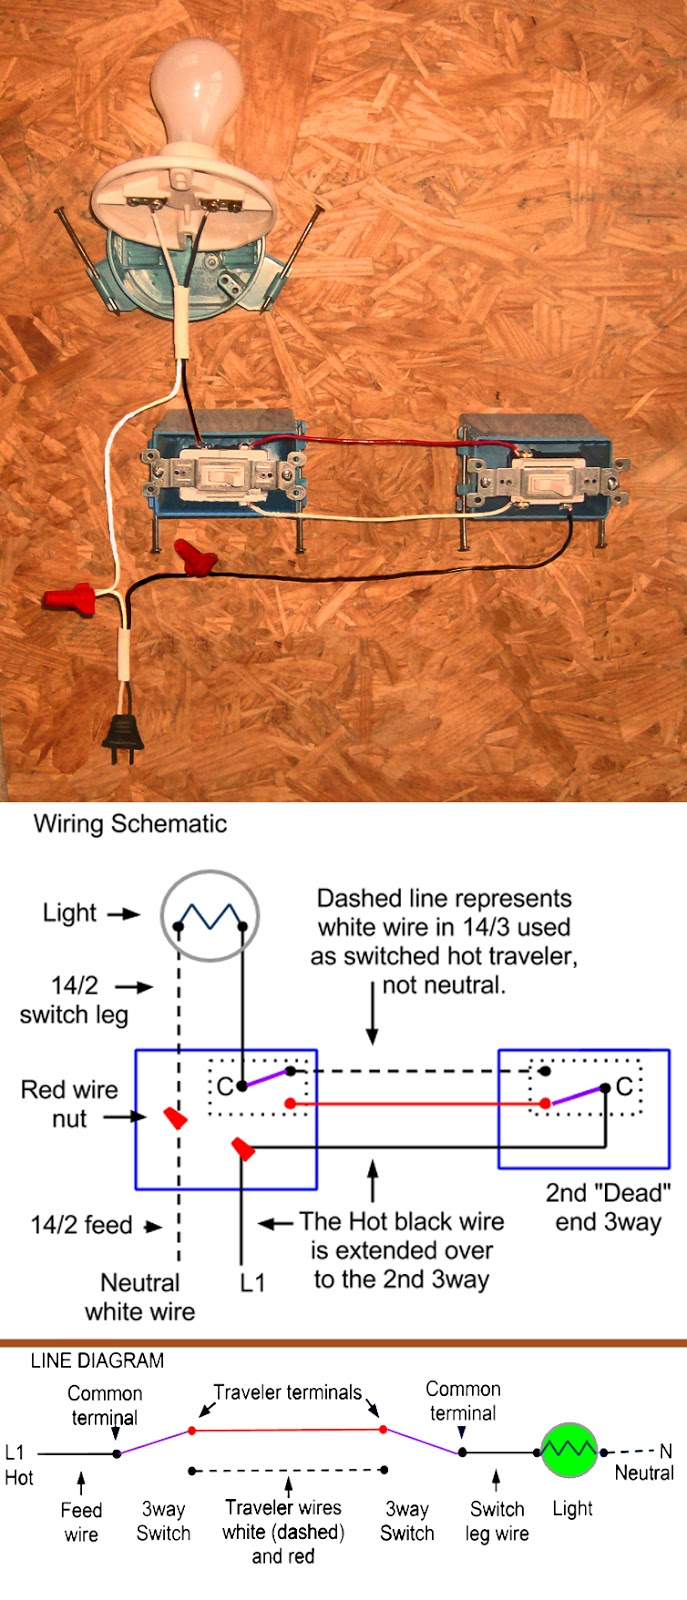 3 Way Switch Wiring Methods Dead End And Radical S3 Parallel Circuits Simple Diagram Circuit We Just Learned 2 Different Of A 3way Many Electricians Are Unaware That There They Think Is Only One